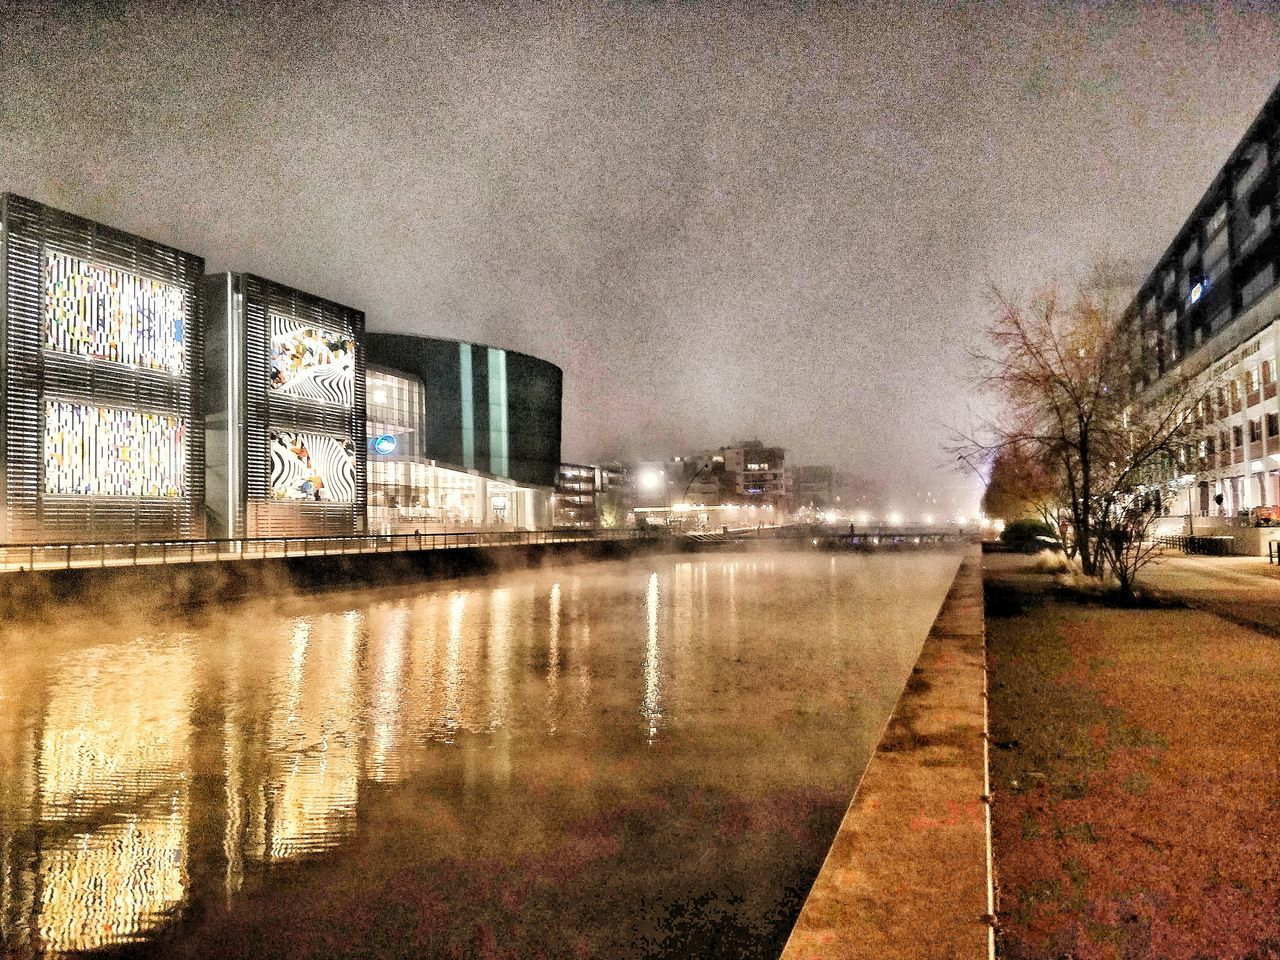 architecture, building exterior, reflection, built structure, water, city, illuminated, sky, nature, tree, no people, building, street, wet, night, outdoors, bare tree, plant, rain, glass, canal